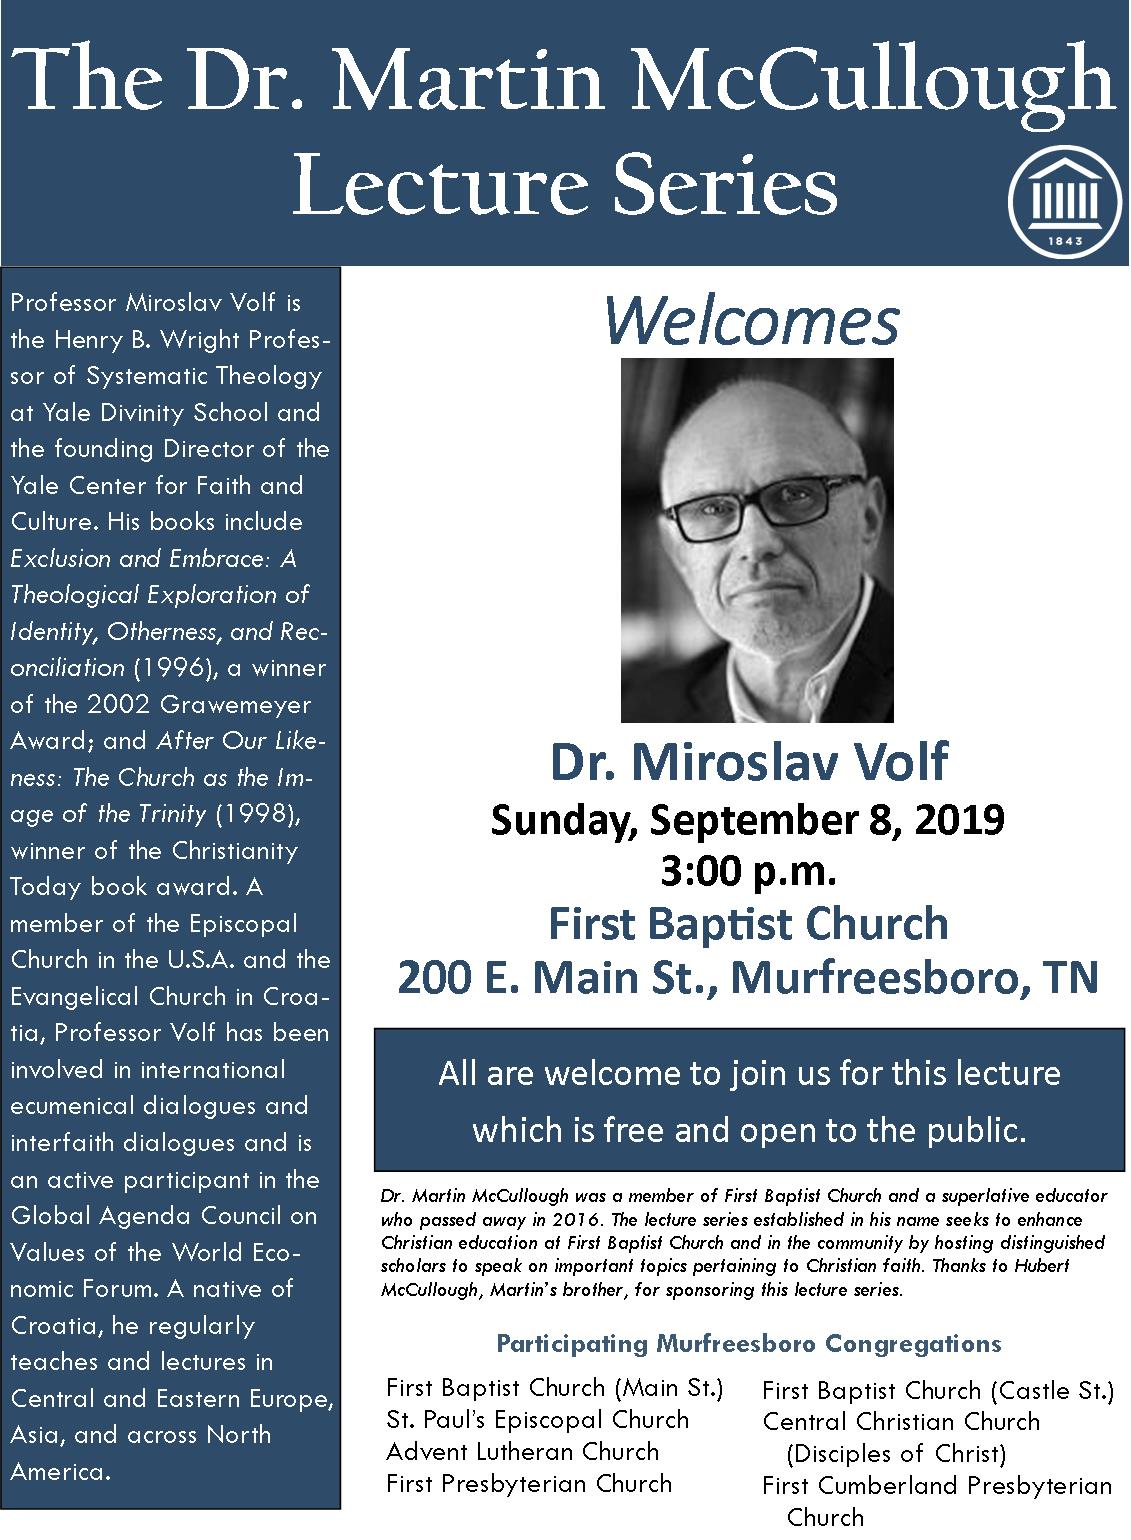 flyer for Dr. Martin McCullough Lecture Series 2019.jpg